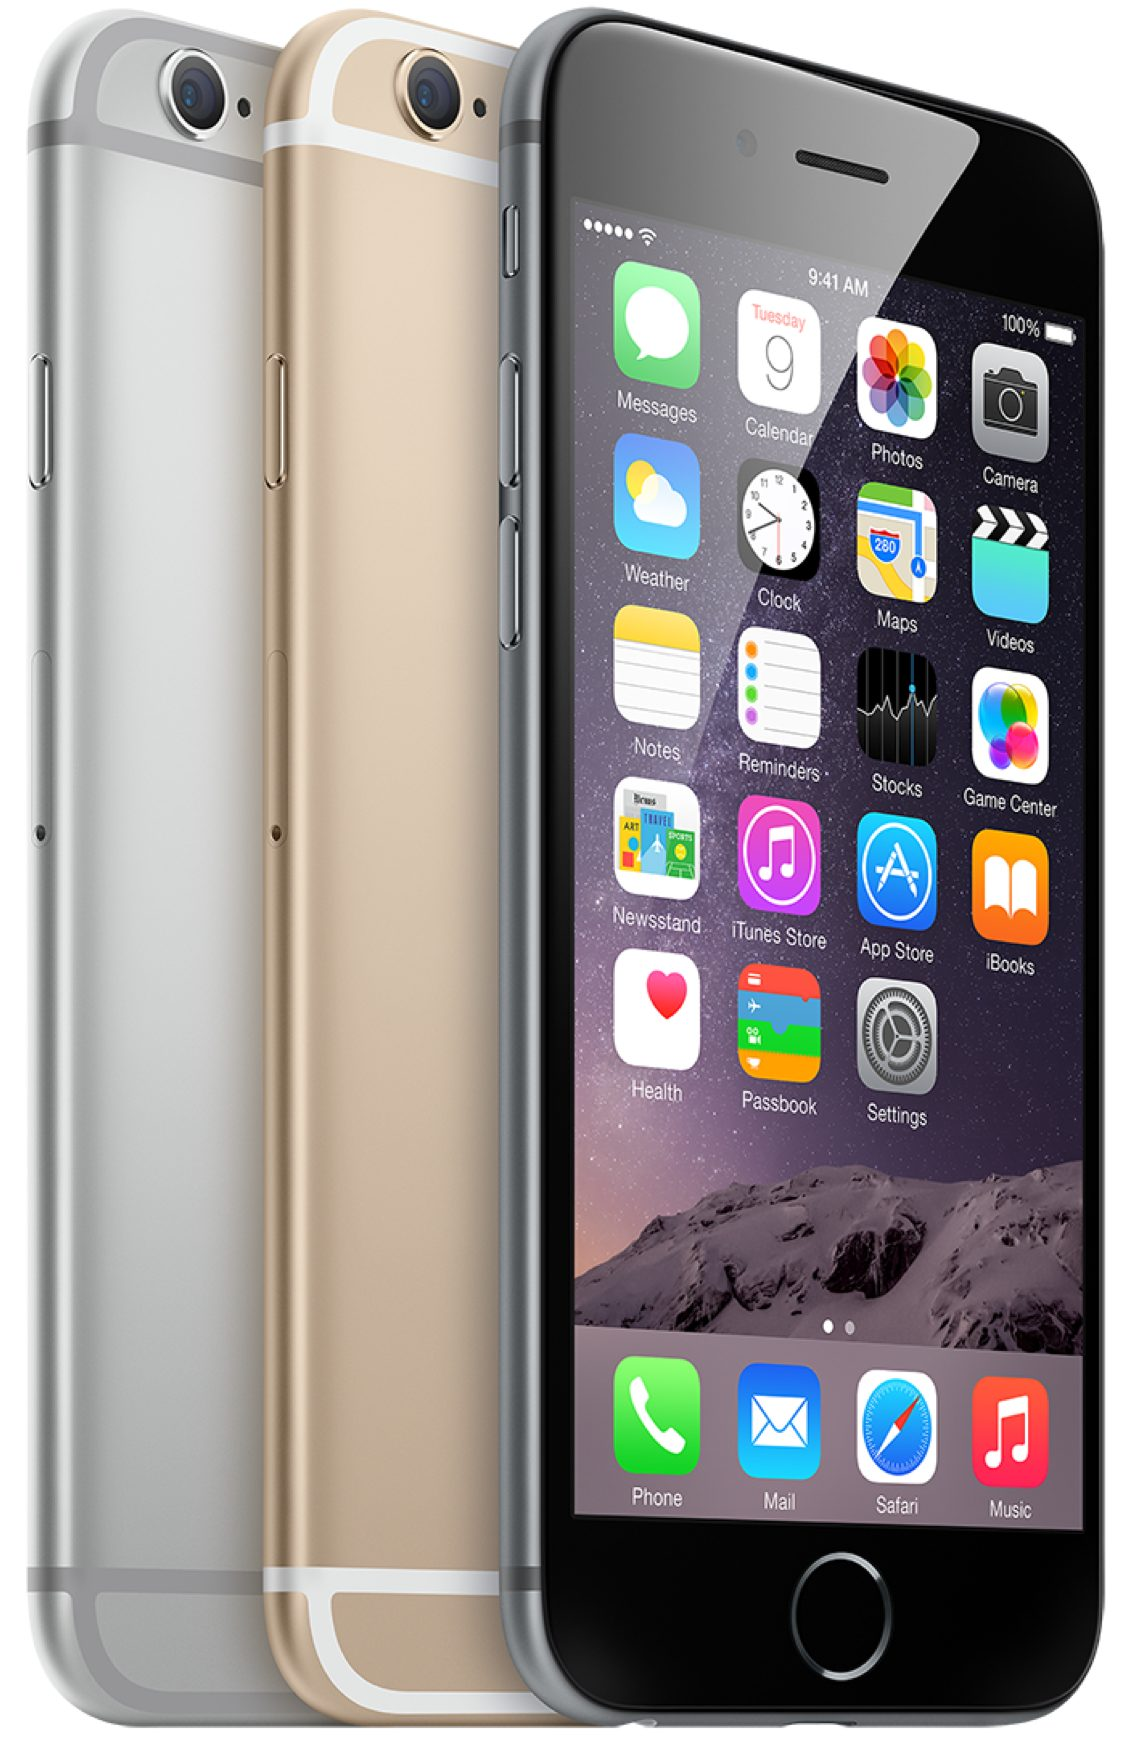 Apple iPhone 6 - Features and Reviews  515f6a73e027e